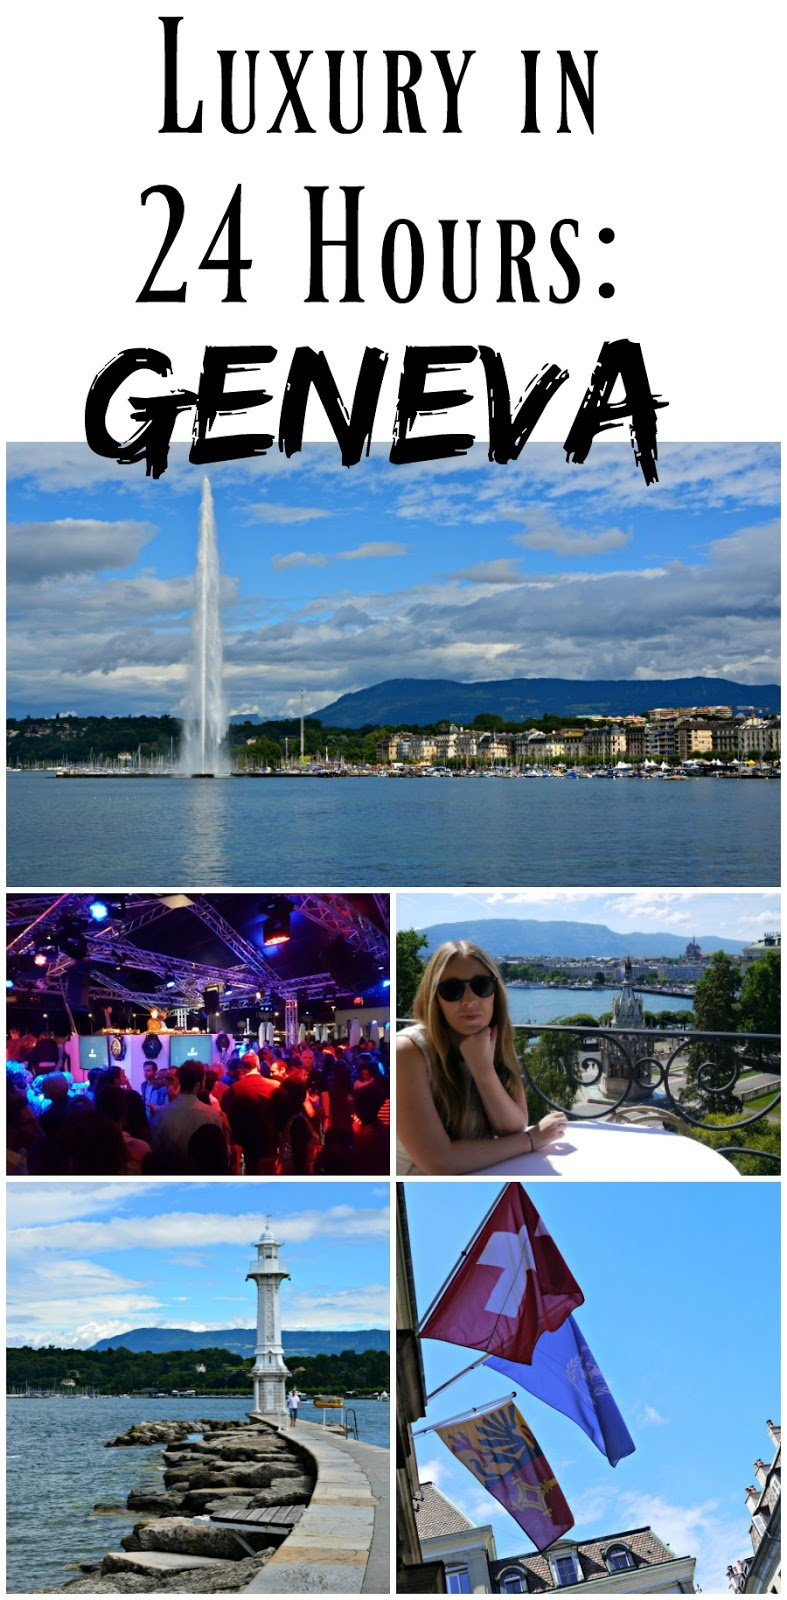 PIN FOR LATER: How to spend a luxury 24 hours in Geneva, Switzerland! Perfect for anyone who loves to relax, see a city, eat delicious food, and check out the party scene!